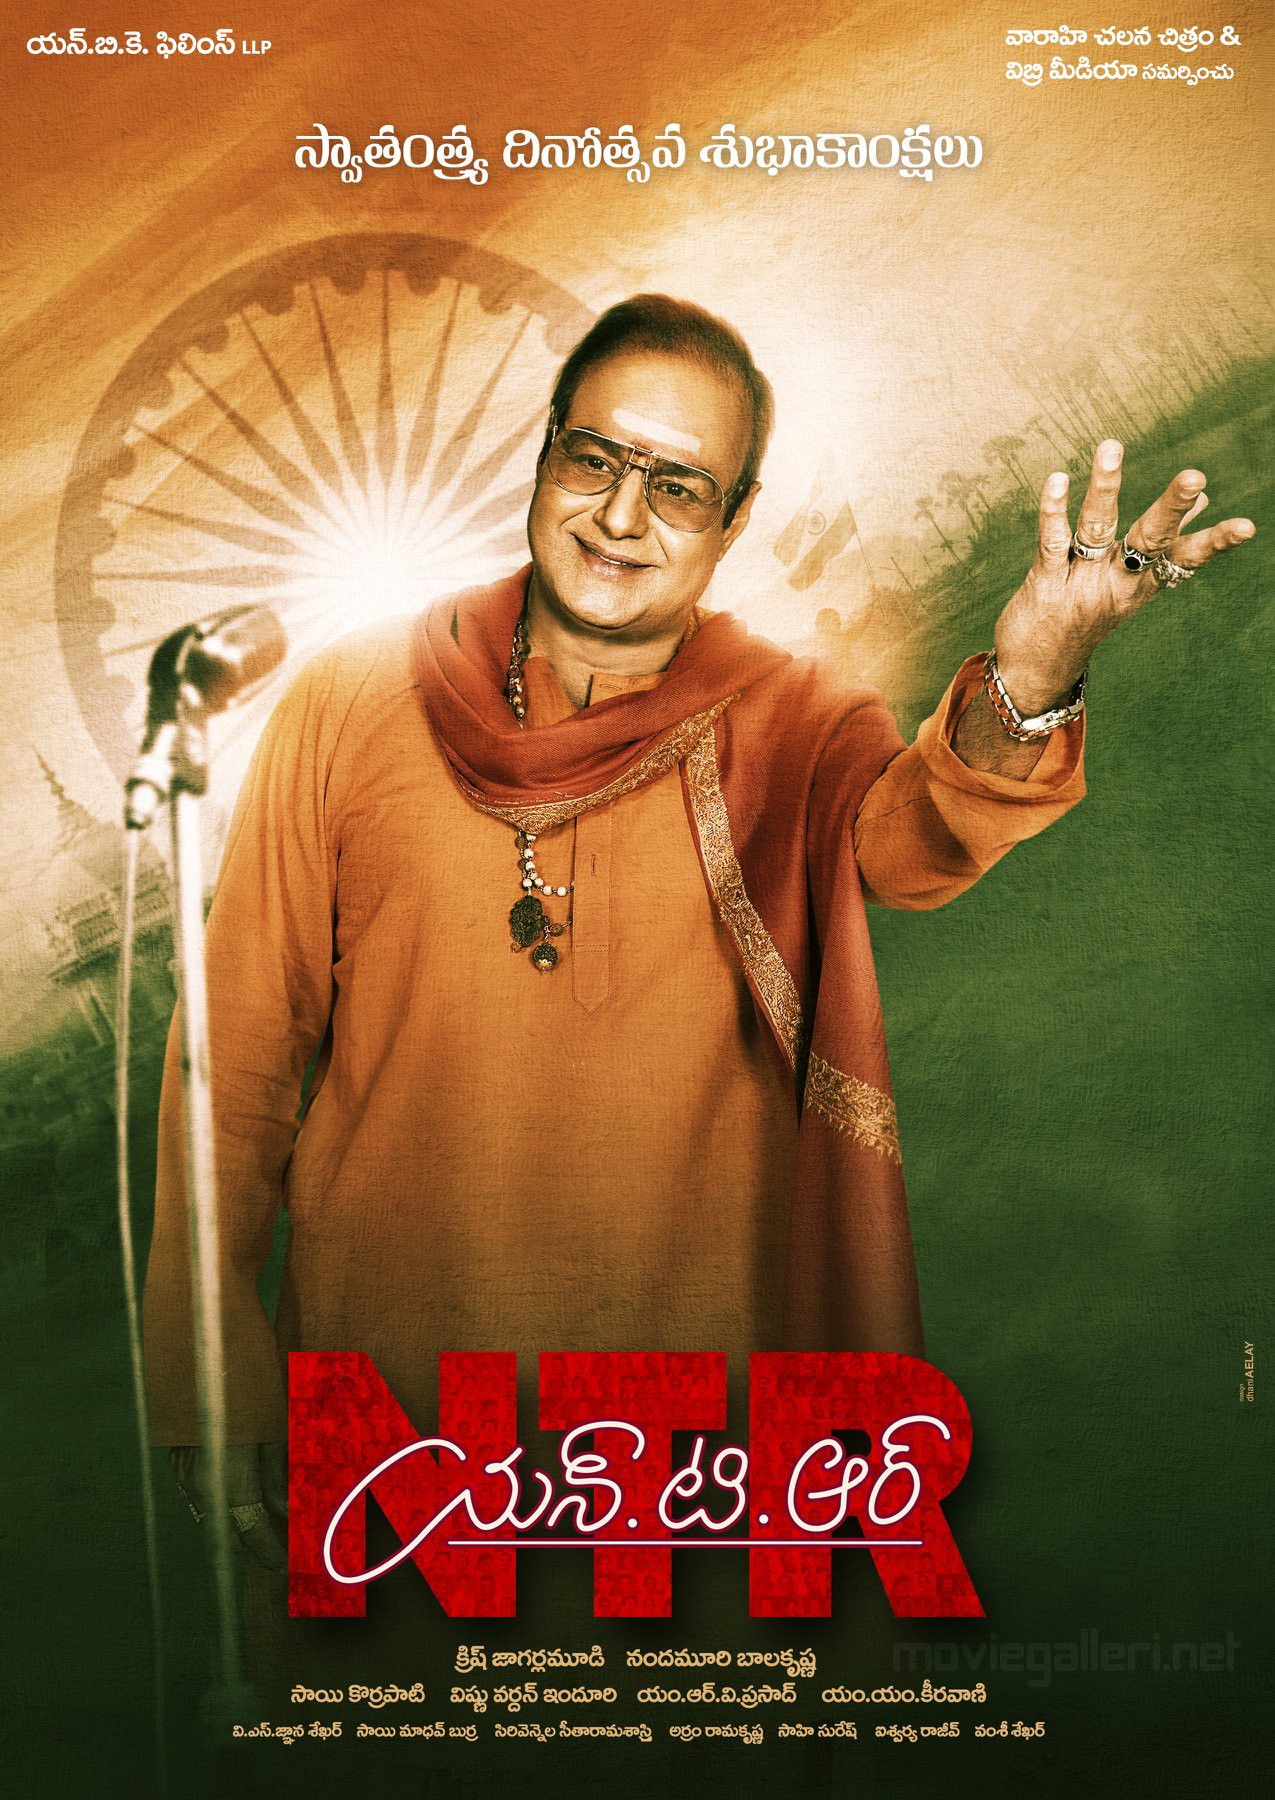 Nandamuri Balakrishna as Nandamuri Tarakarama Rao in NTR biopic movie poster HD